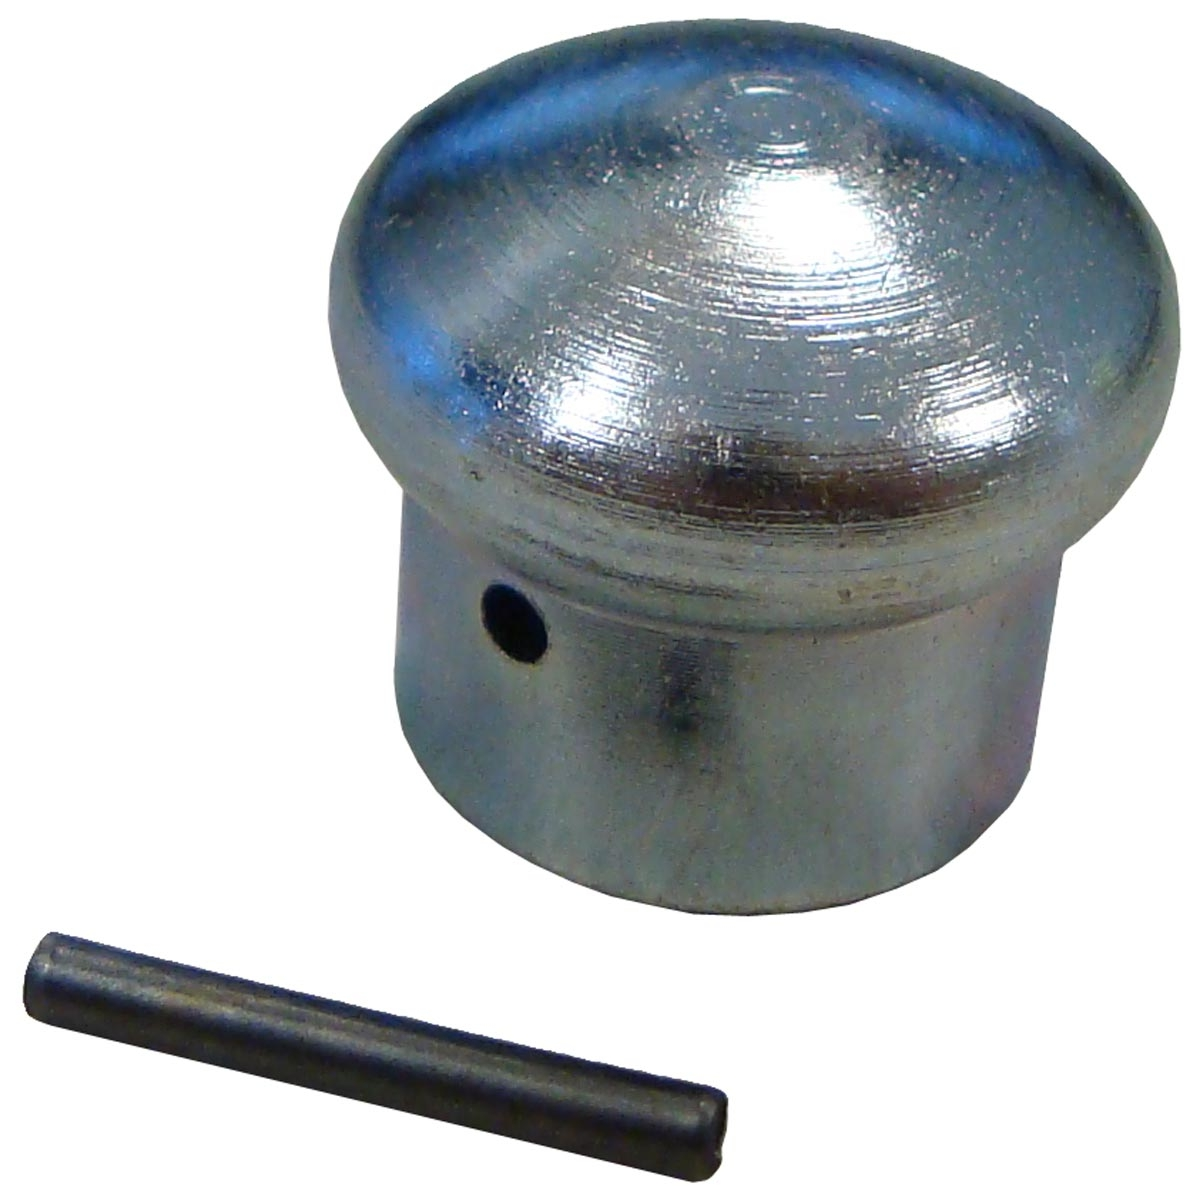 LIVE PTO PAWL OPERATING KNOB WITH ROLL PIN